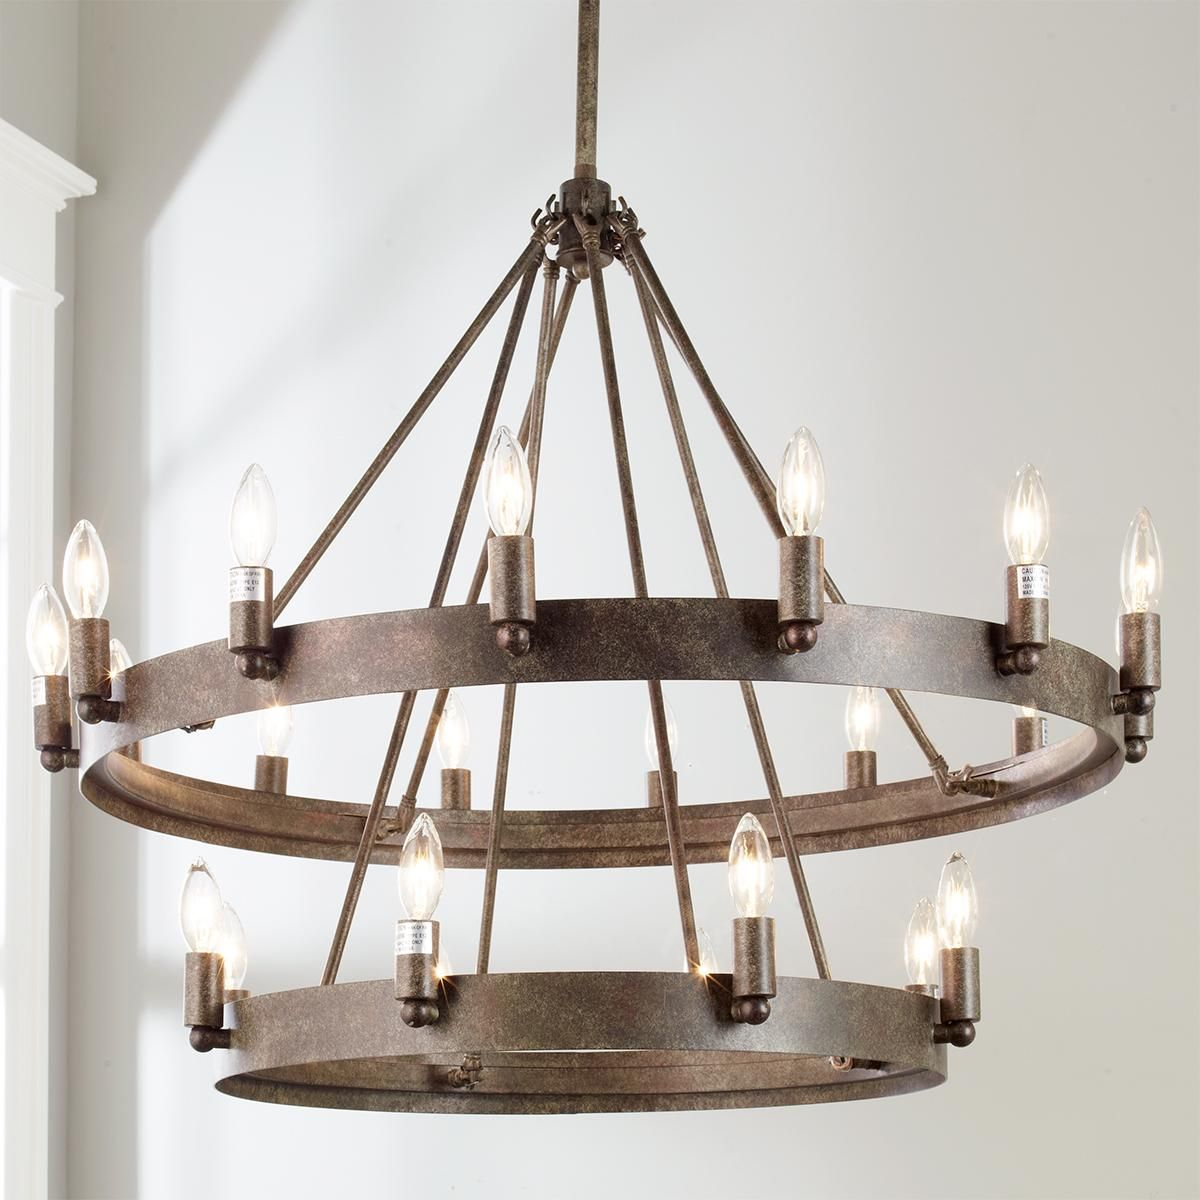 urban industrial double ring chandelier urban industrial urban industrial double ring chandelier